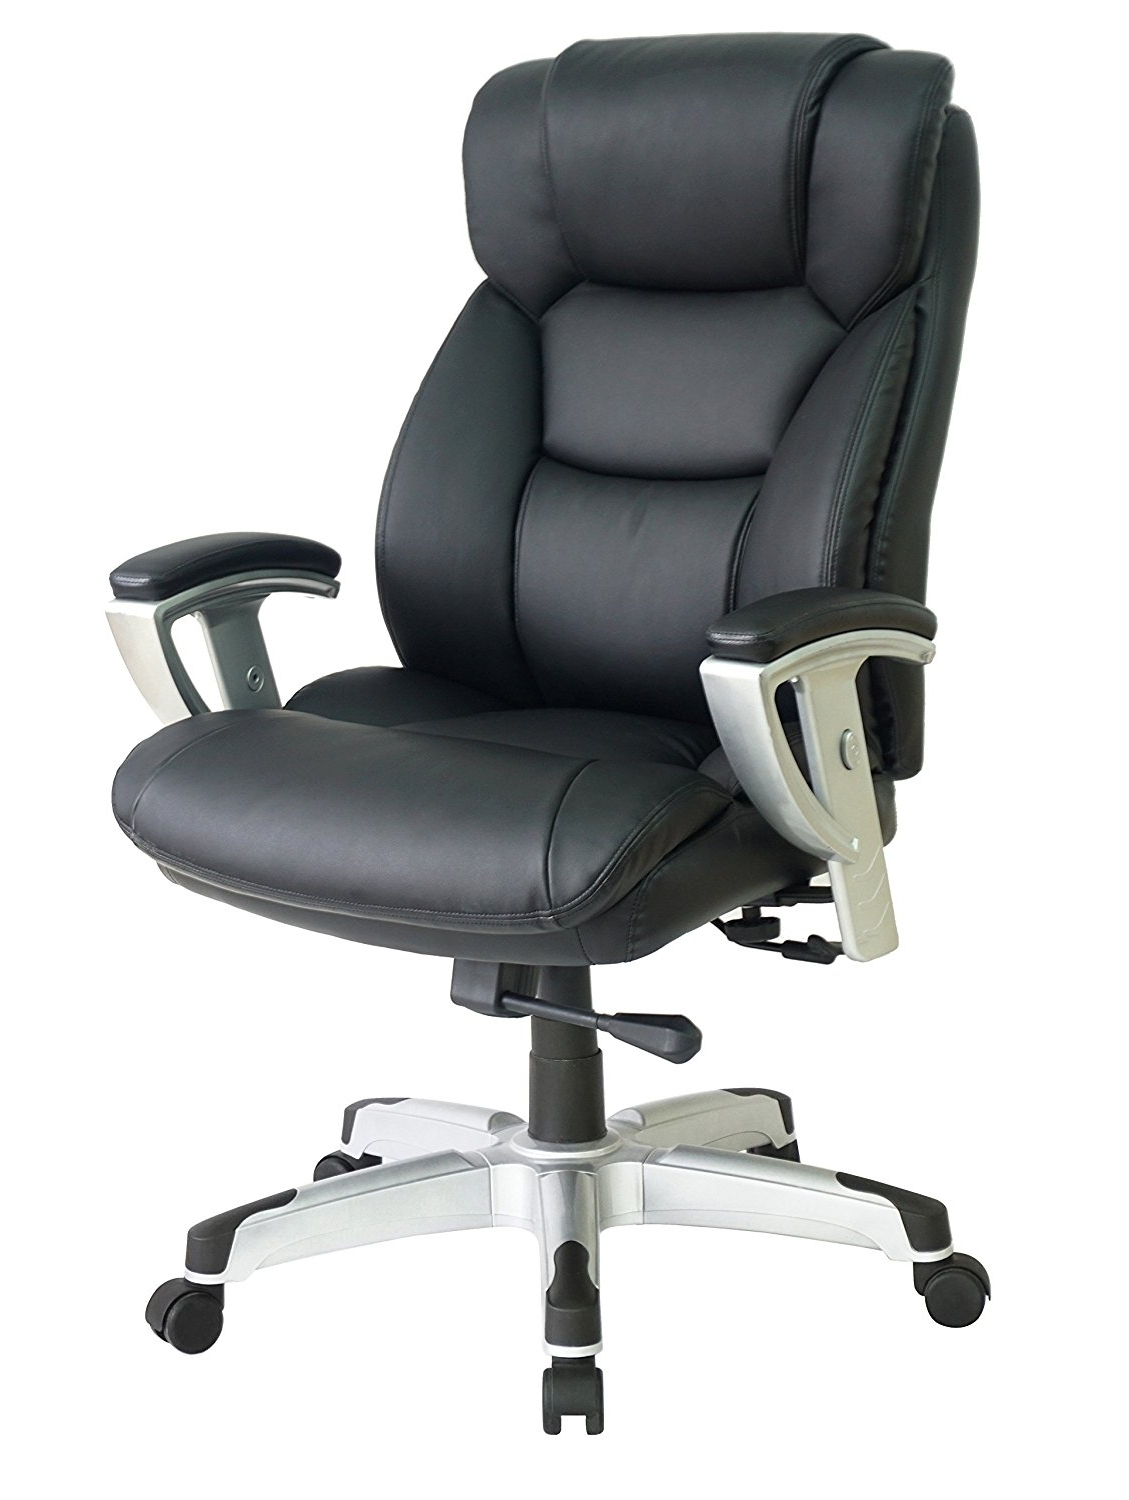 Most Current Executive Office Racing Chairs Pertaining To 10 Big & Tall Office Chairs For Extra Large Comfort (View 14 of 20)